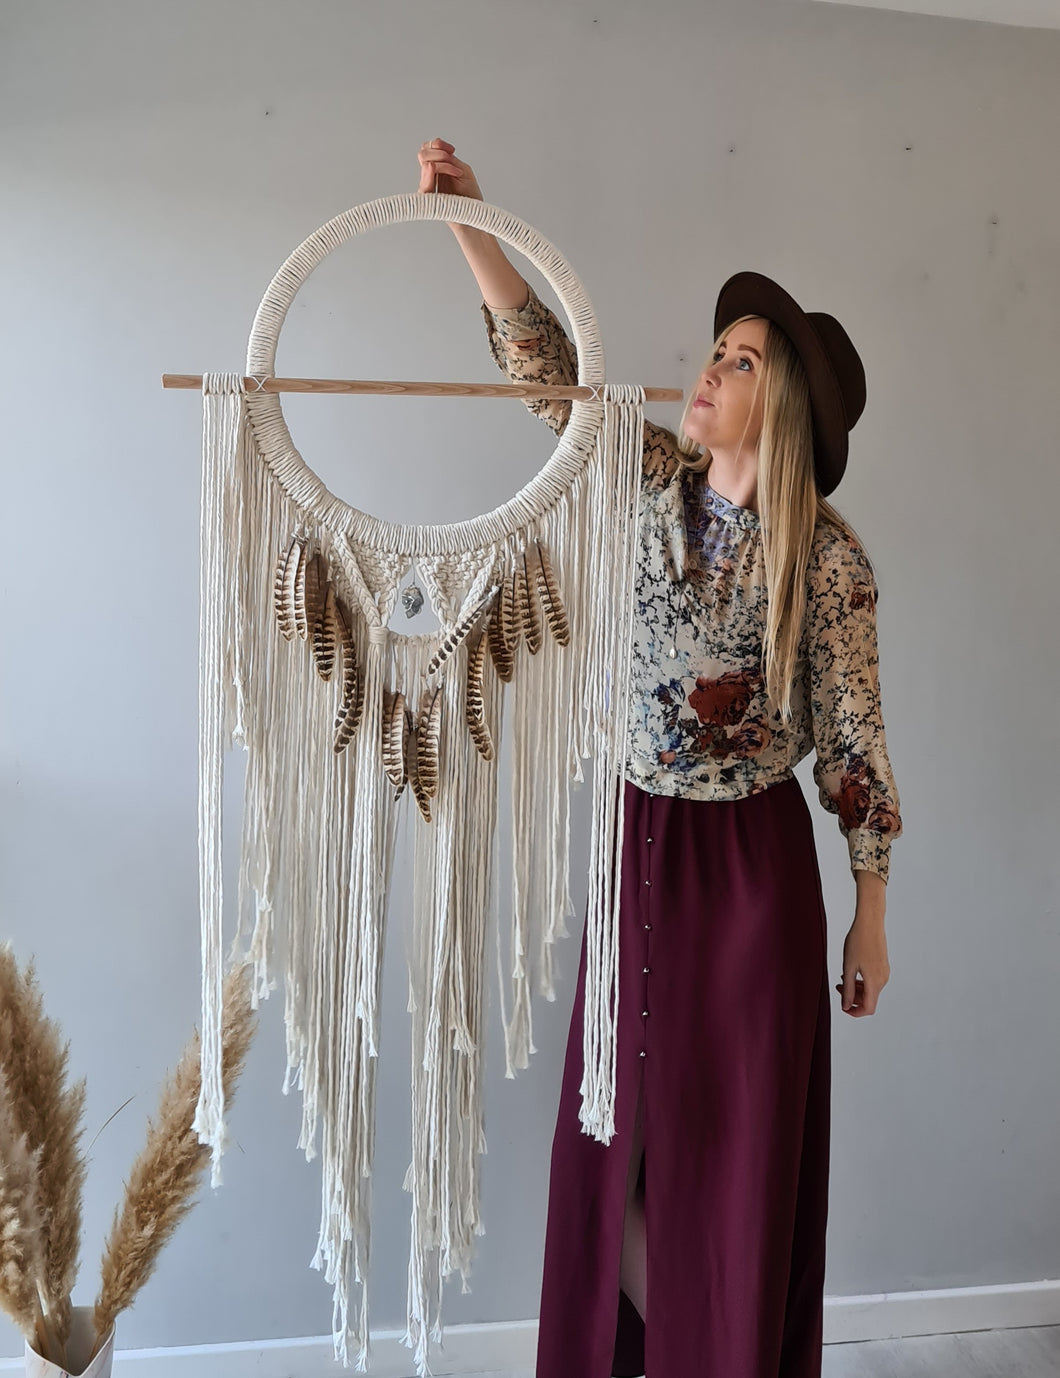 Feathered dreamcatcher with celestite stone.